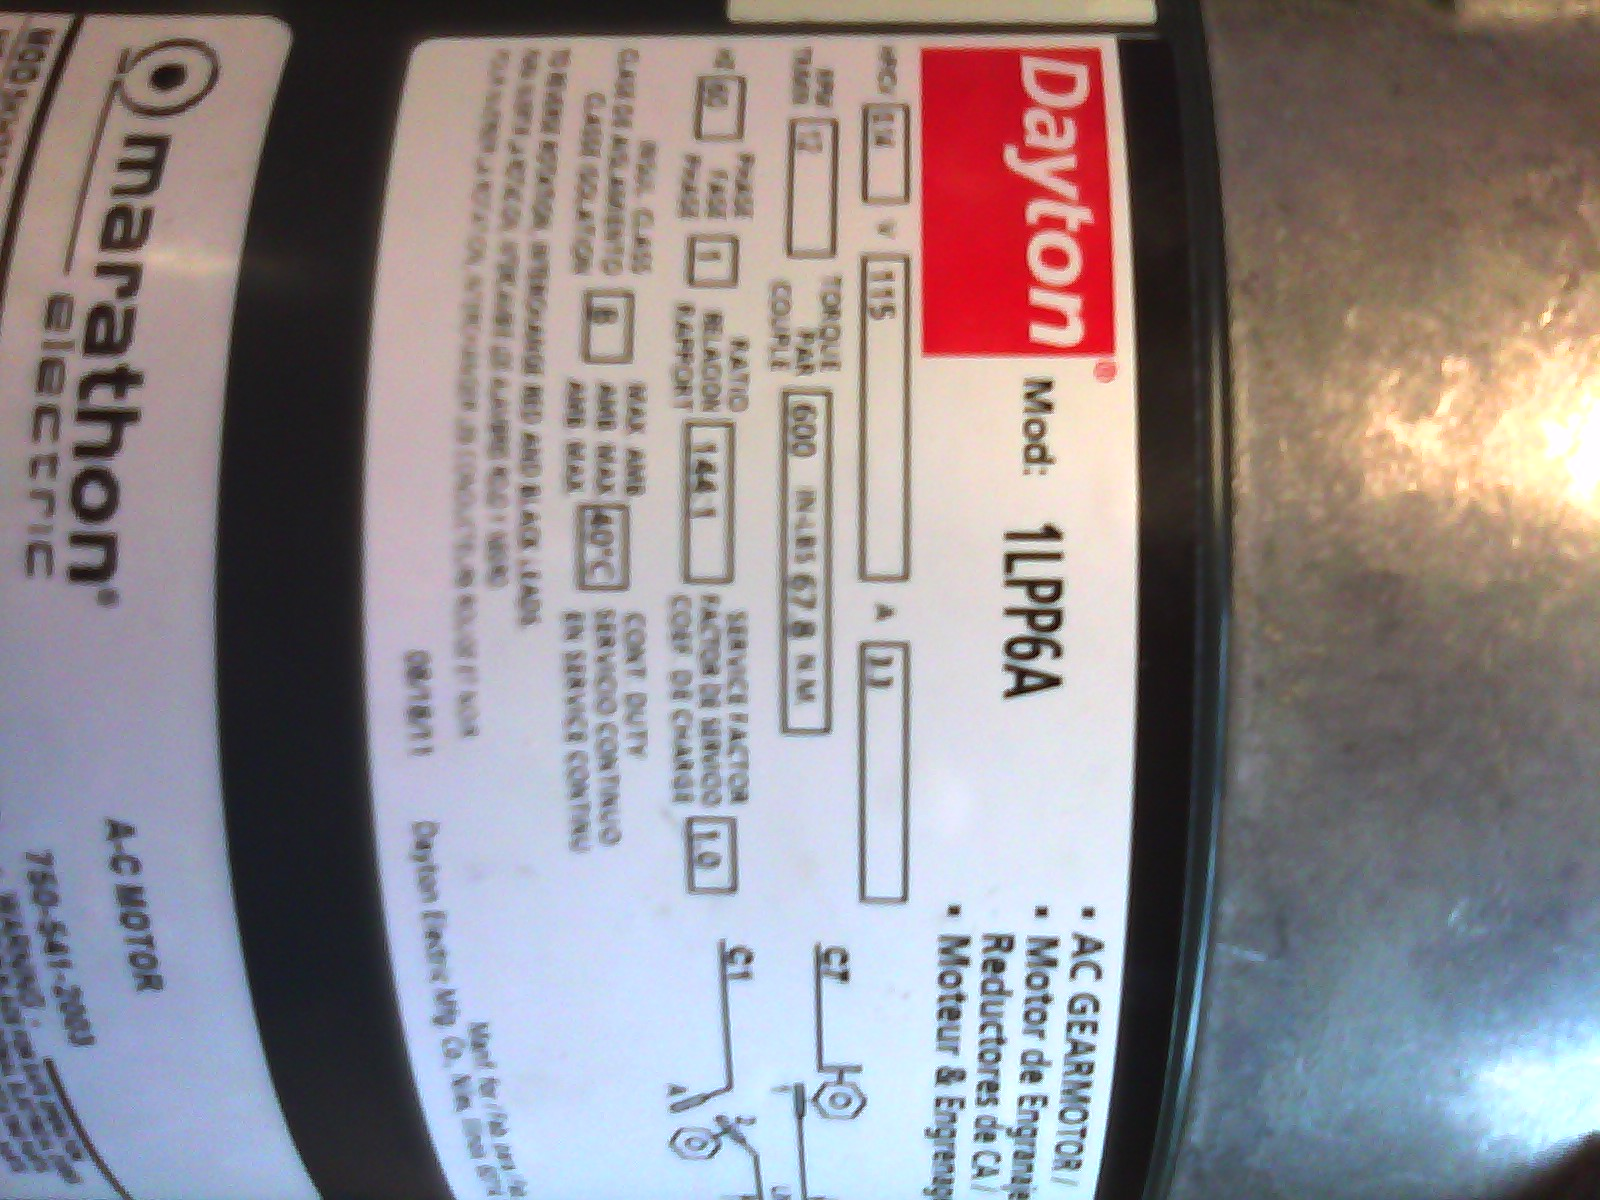 dayton gear motor wiring diagram for downlights with transformers we just bought a to replace on our